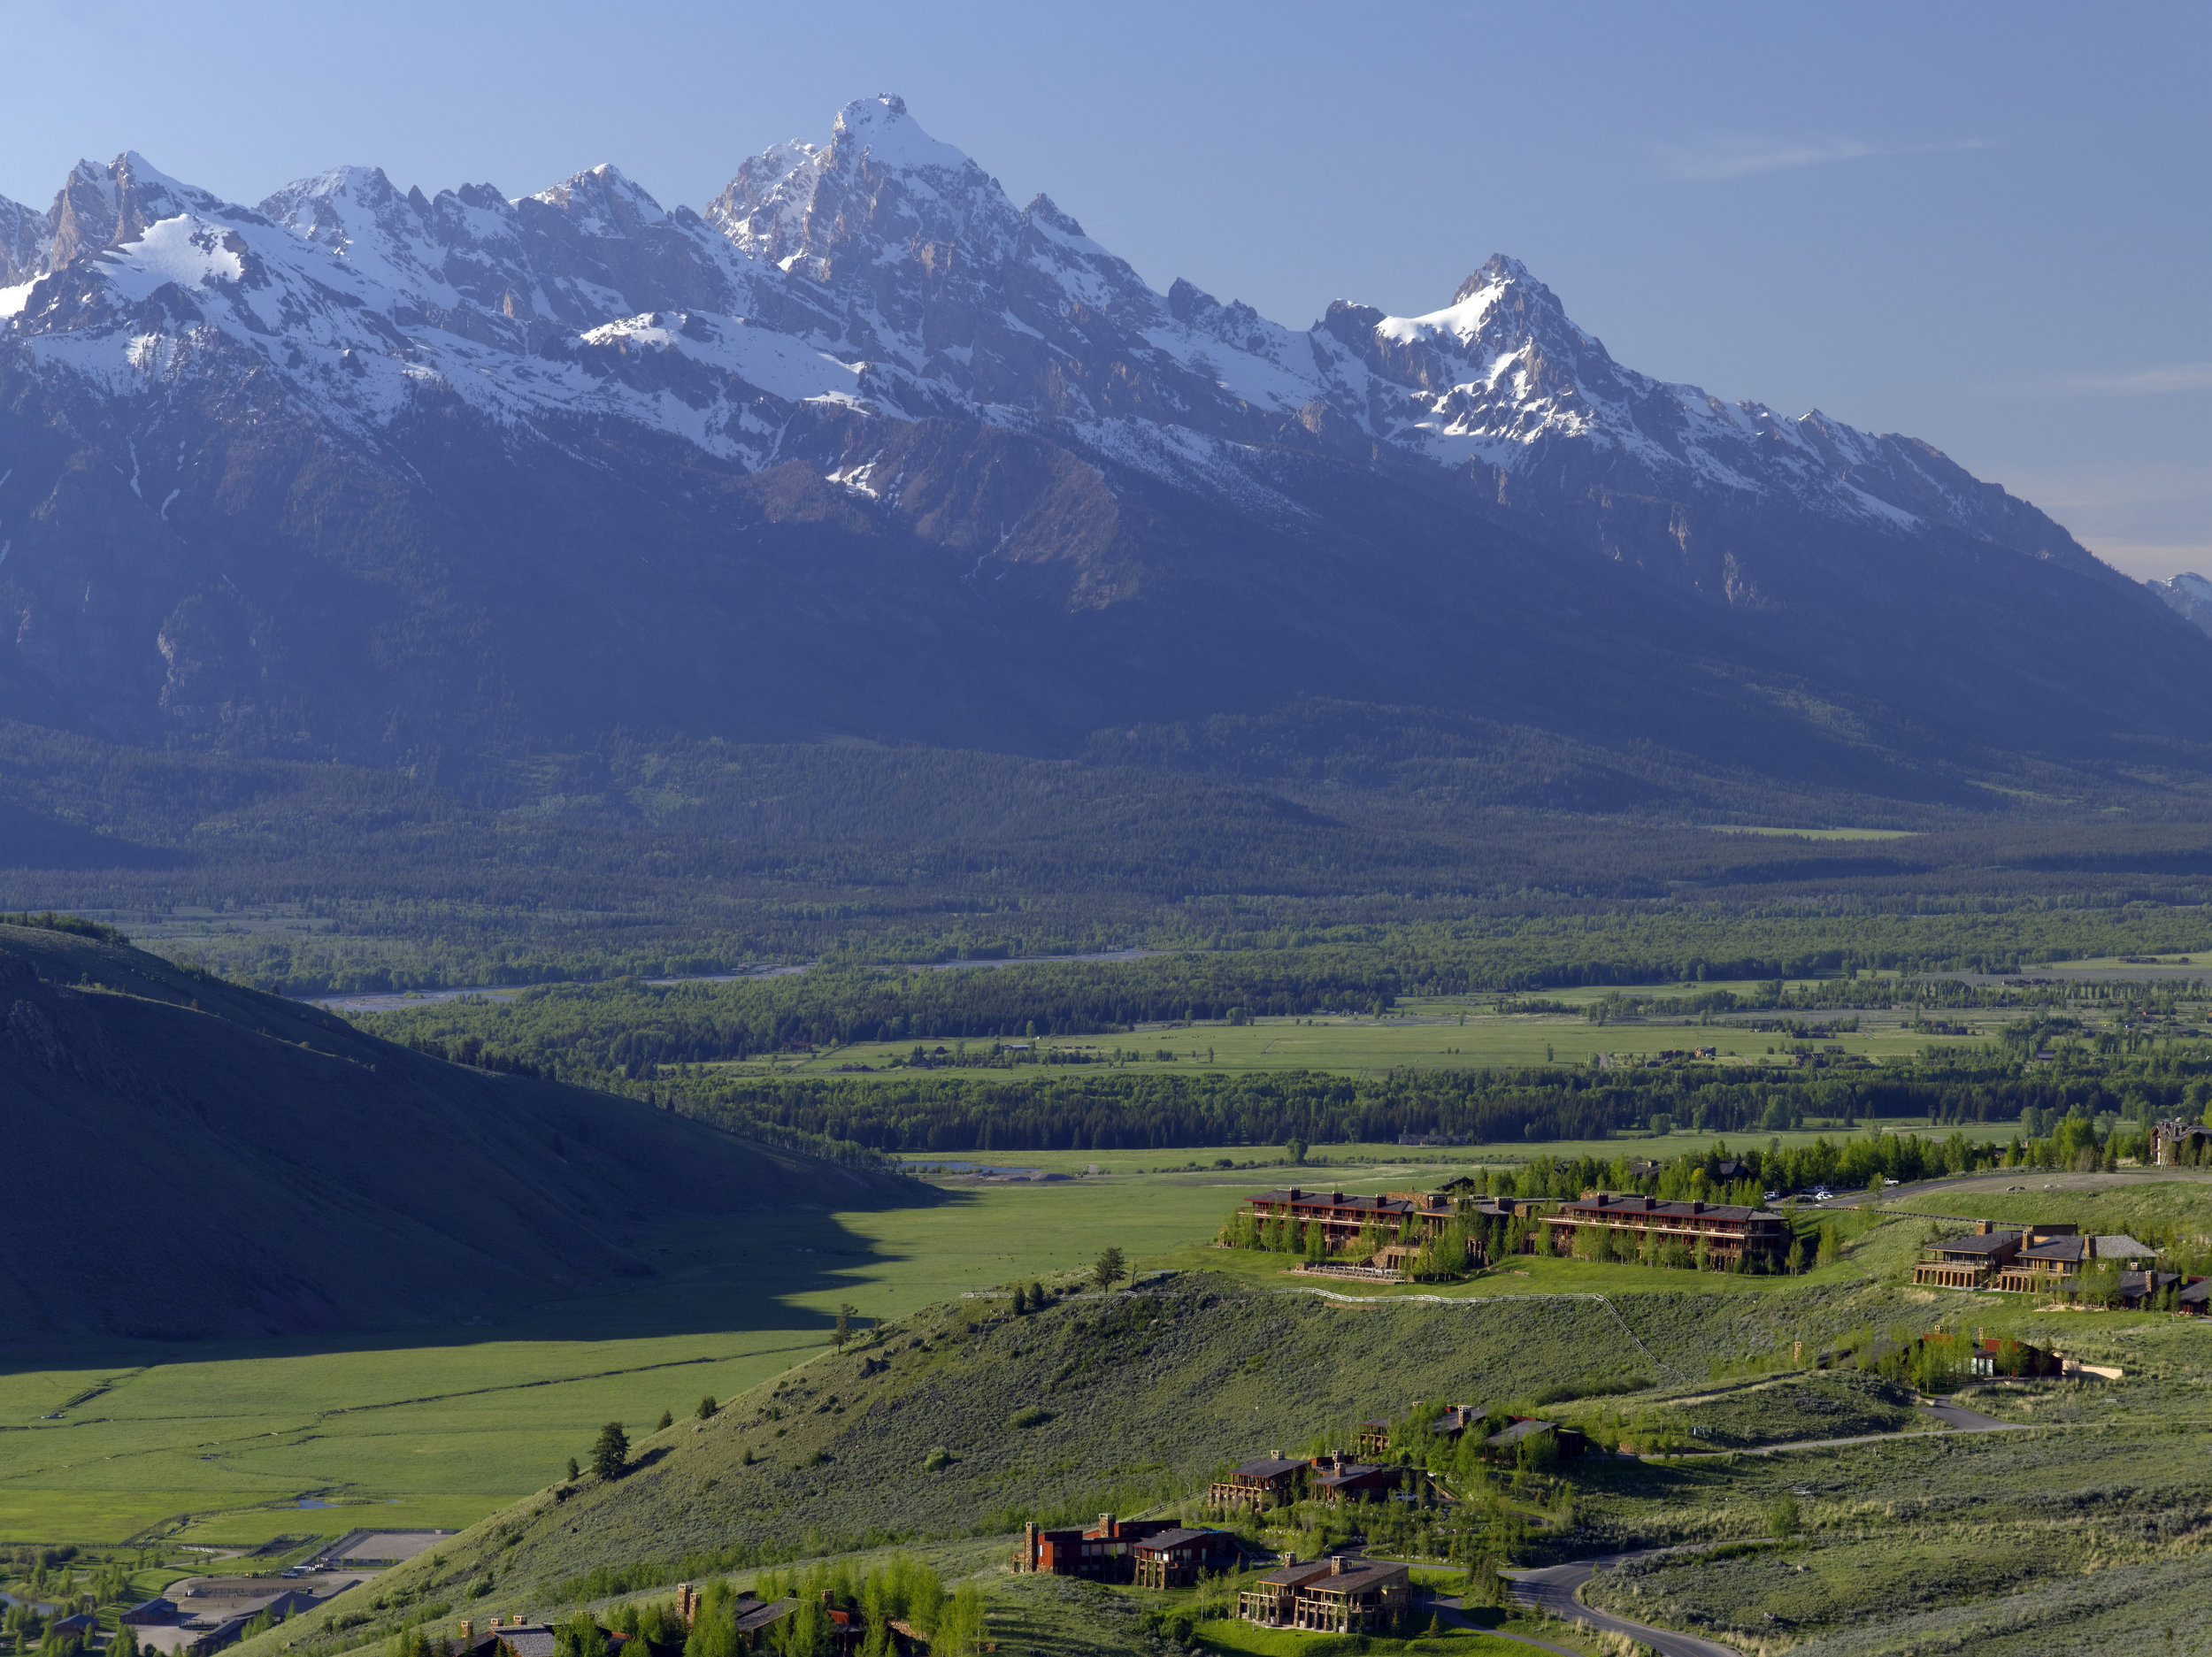 Amangani Resort - Jackson Hole, Wyoming